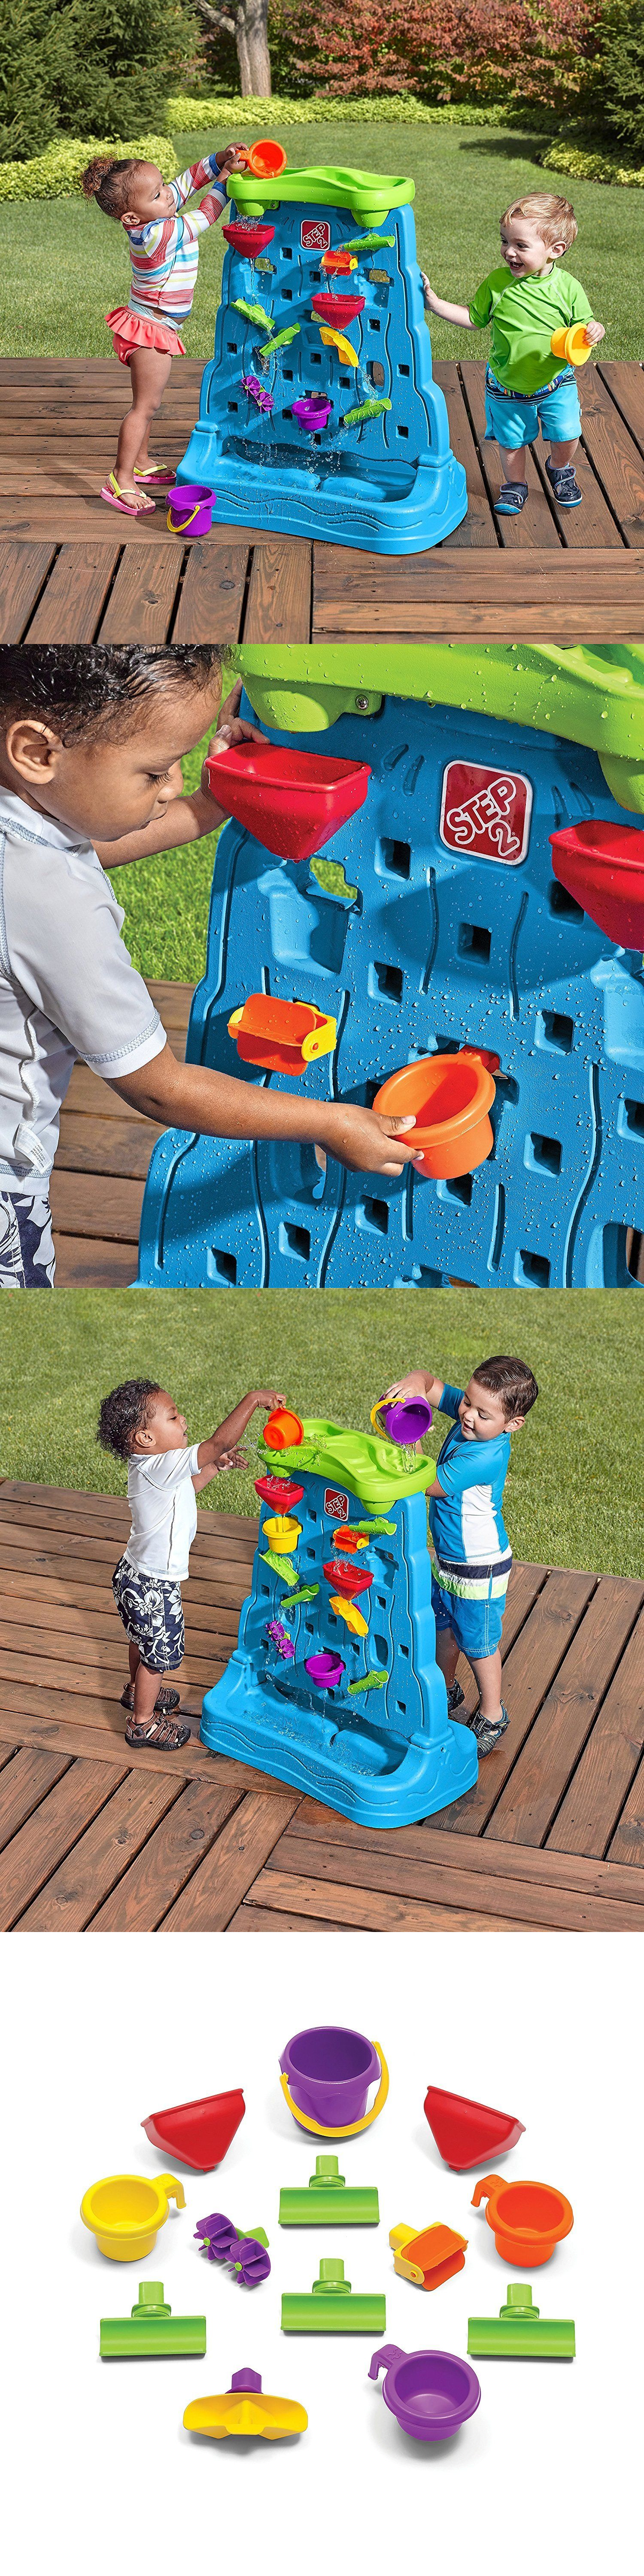 Water Toys Summer Toys For Toddlers Outdoor Water Play